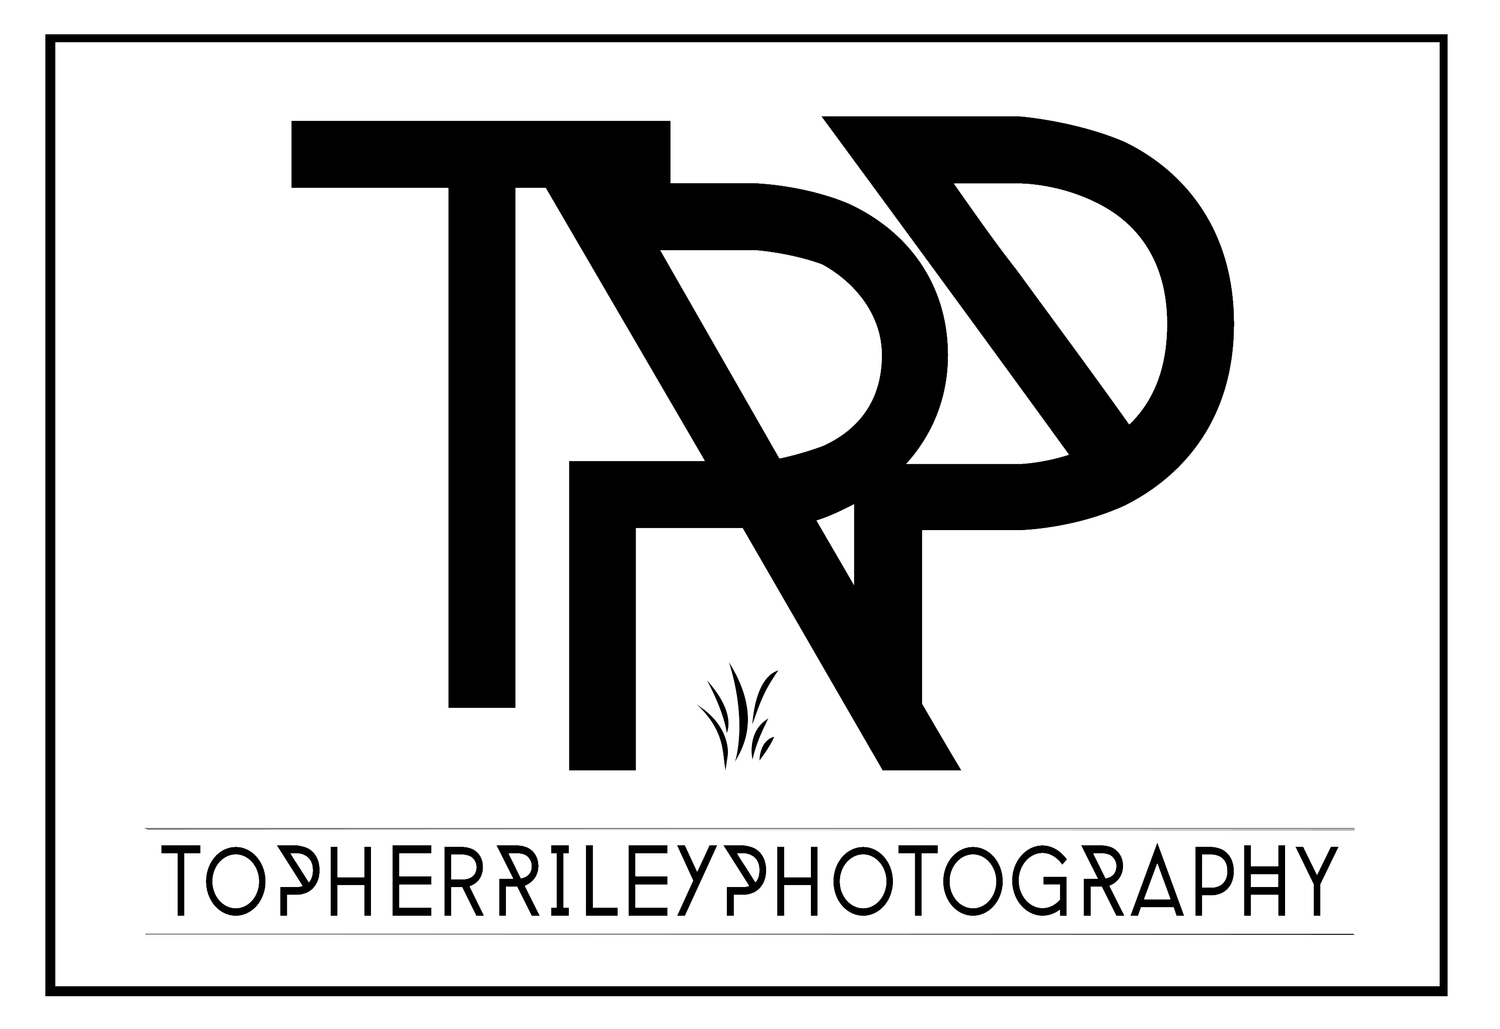 Topher Riley Photography